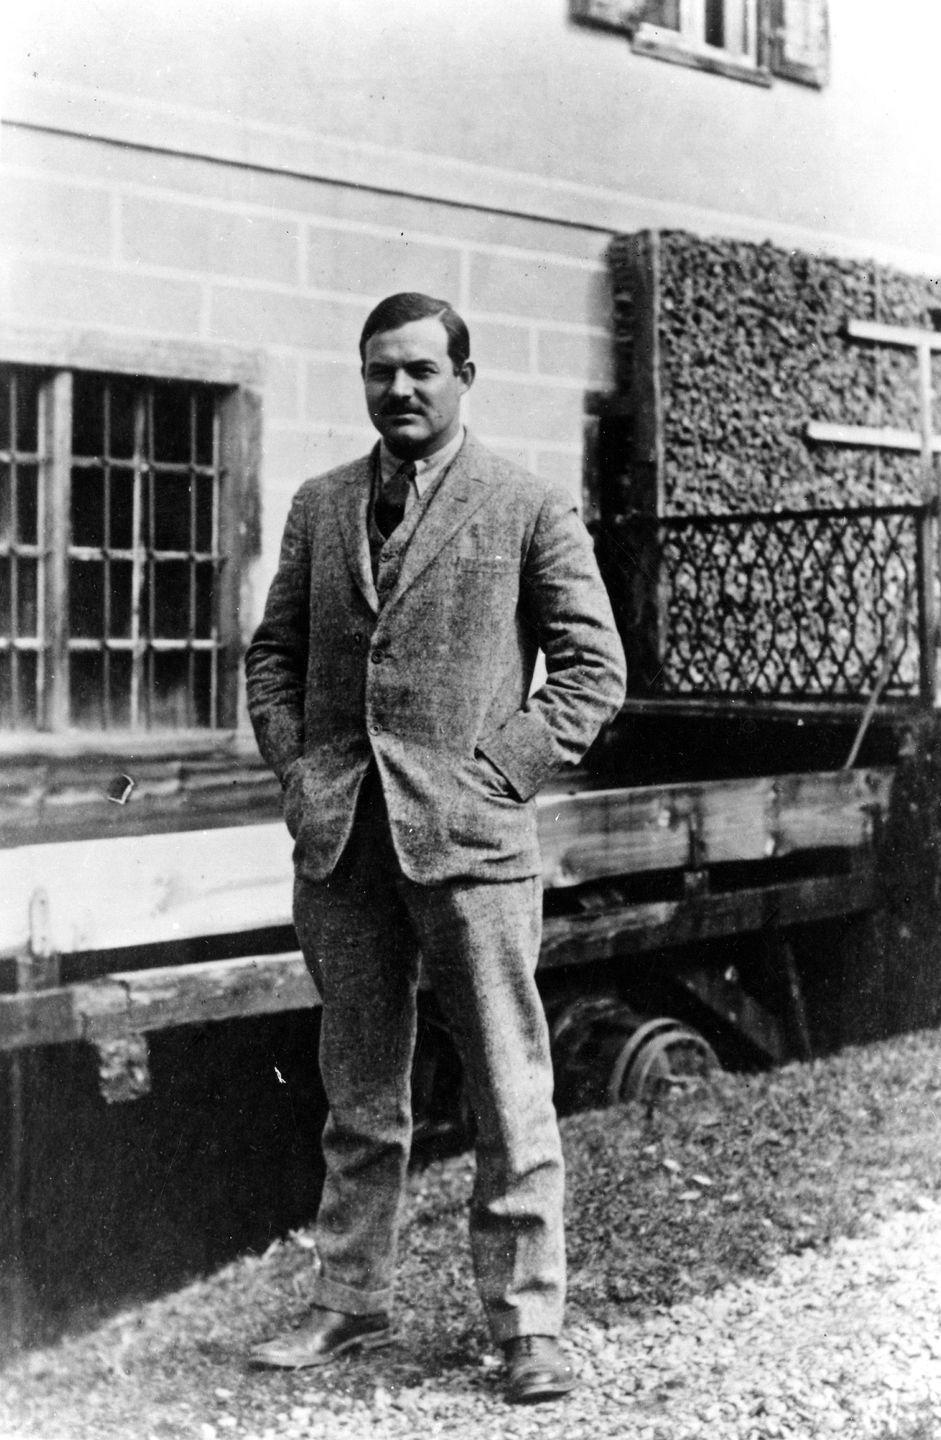 """<p>In 1922, Hemingway's career suffered a major setback when <a href=""""https://lostmanuscripts.com/2010/07/31/hemingways-lost-suitcase/"""" rel=""""nofollow noopener"""" target=""""_blank"""" data-ylk=""""slk:the manuscript he was working on"""" class=""""link rapid-noclick-resp"""">the manuscript he was working on</a>, and all of its carbon copies, were lost while traveling to Switzerland.</p>"""